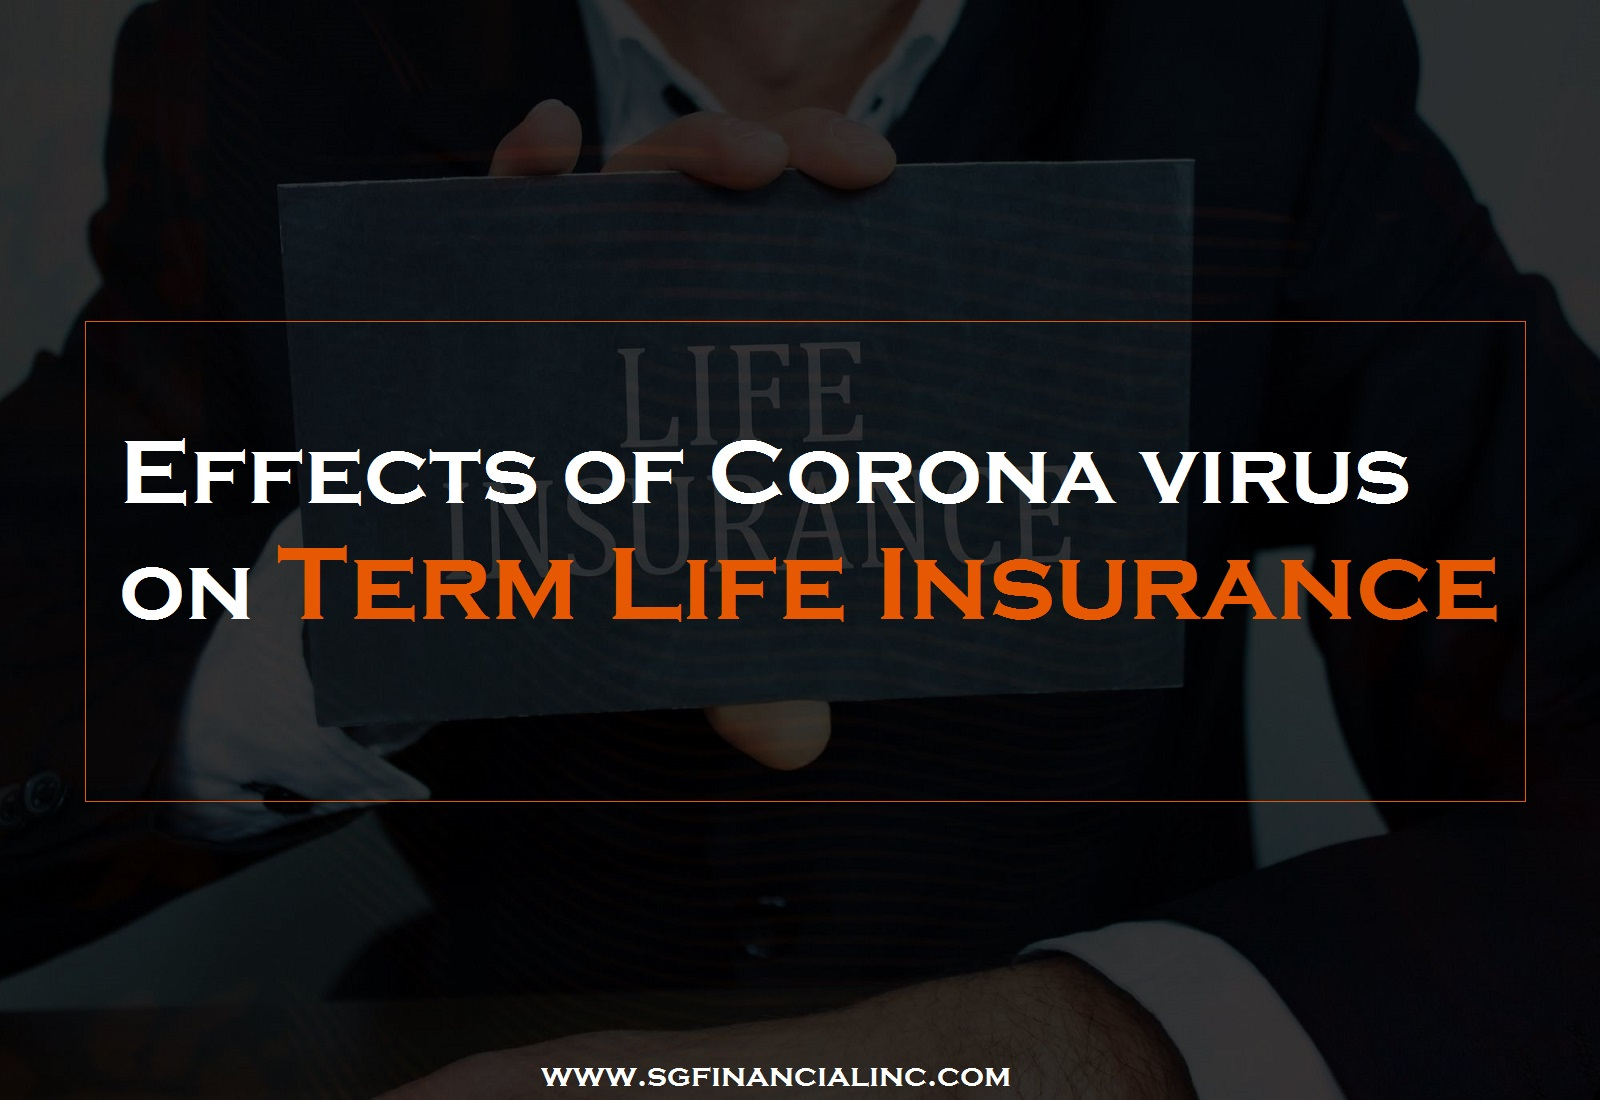 Effects of Corona virus on Term Life Insurance